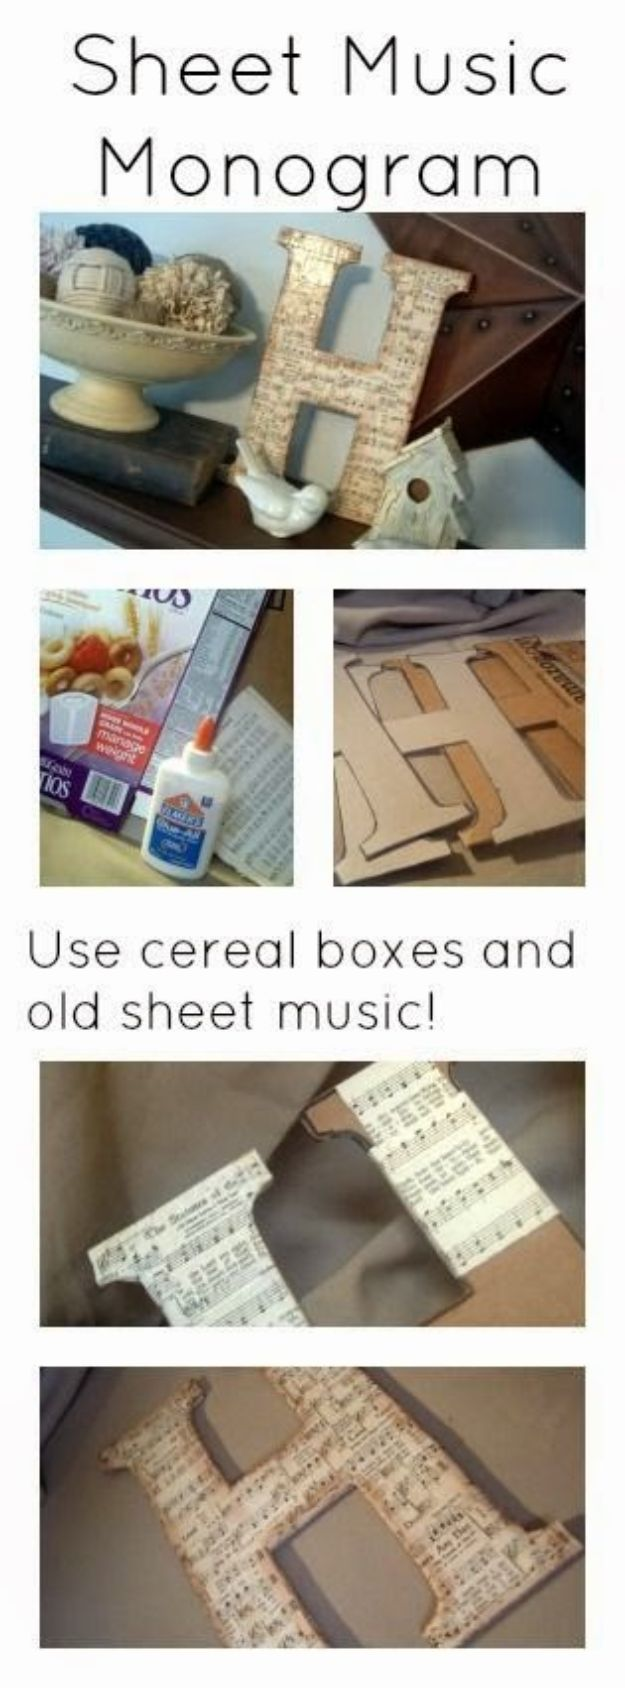 Cool DIY Ideas With Cereal Boxes - Sheet Music Monogram - Easy Organizing Ideas, Cute Kids Crafts and Creative Ways to Make Things Out of A Cereal Box - Cheap Gifts, DIY School Supplies and Storage Ideas http://diyjoy.com/diy-ideas-cereal-boxes